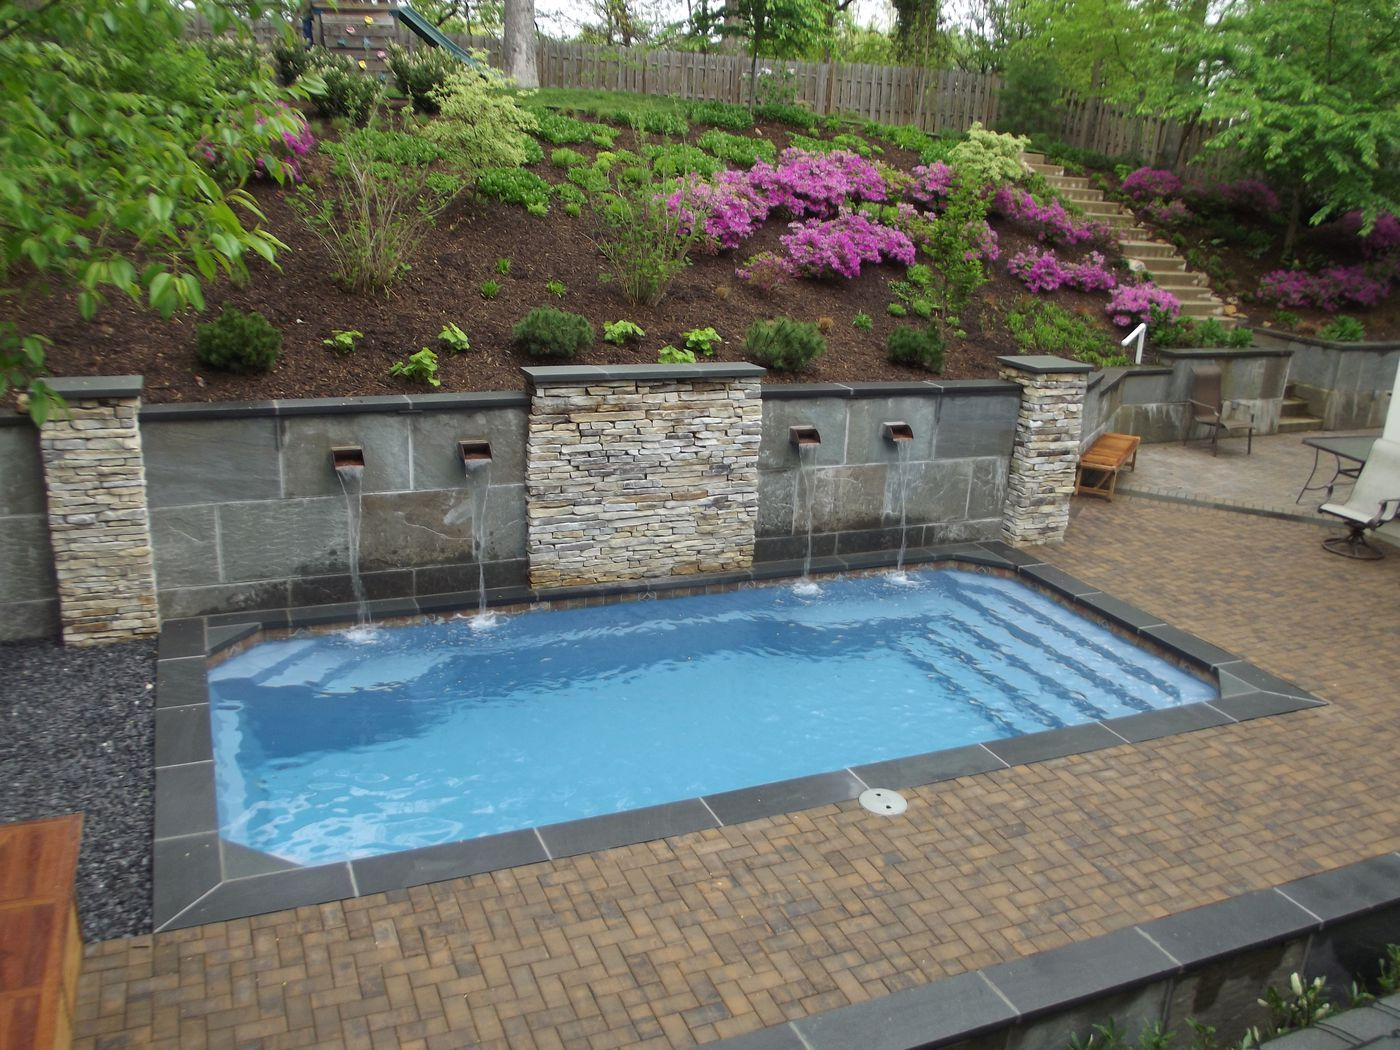 Barrier reef fiberglass pool installed by river pools and spas for Fiberglass above ground pool